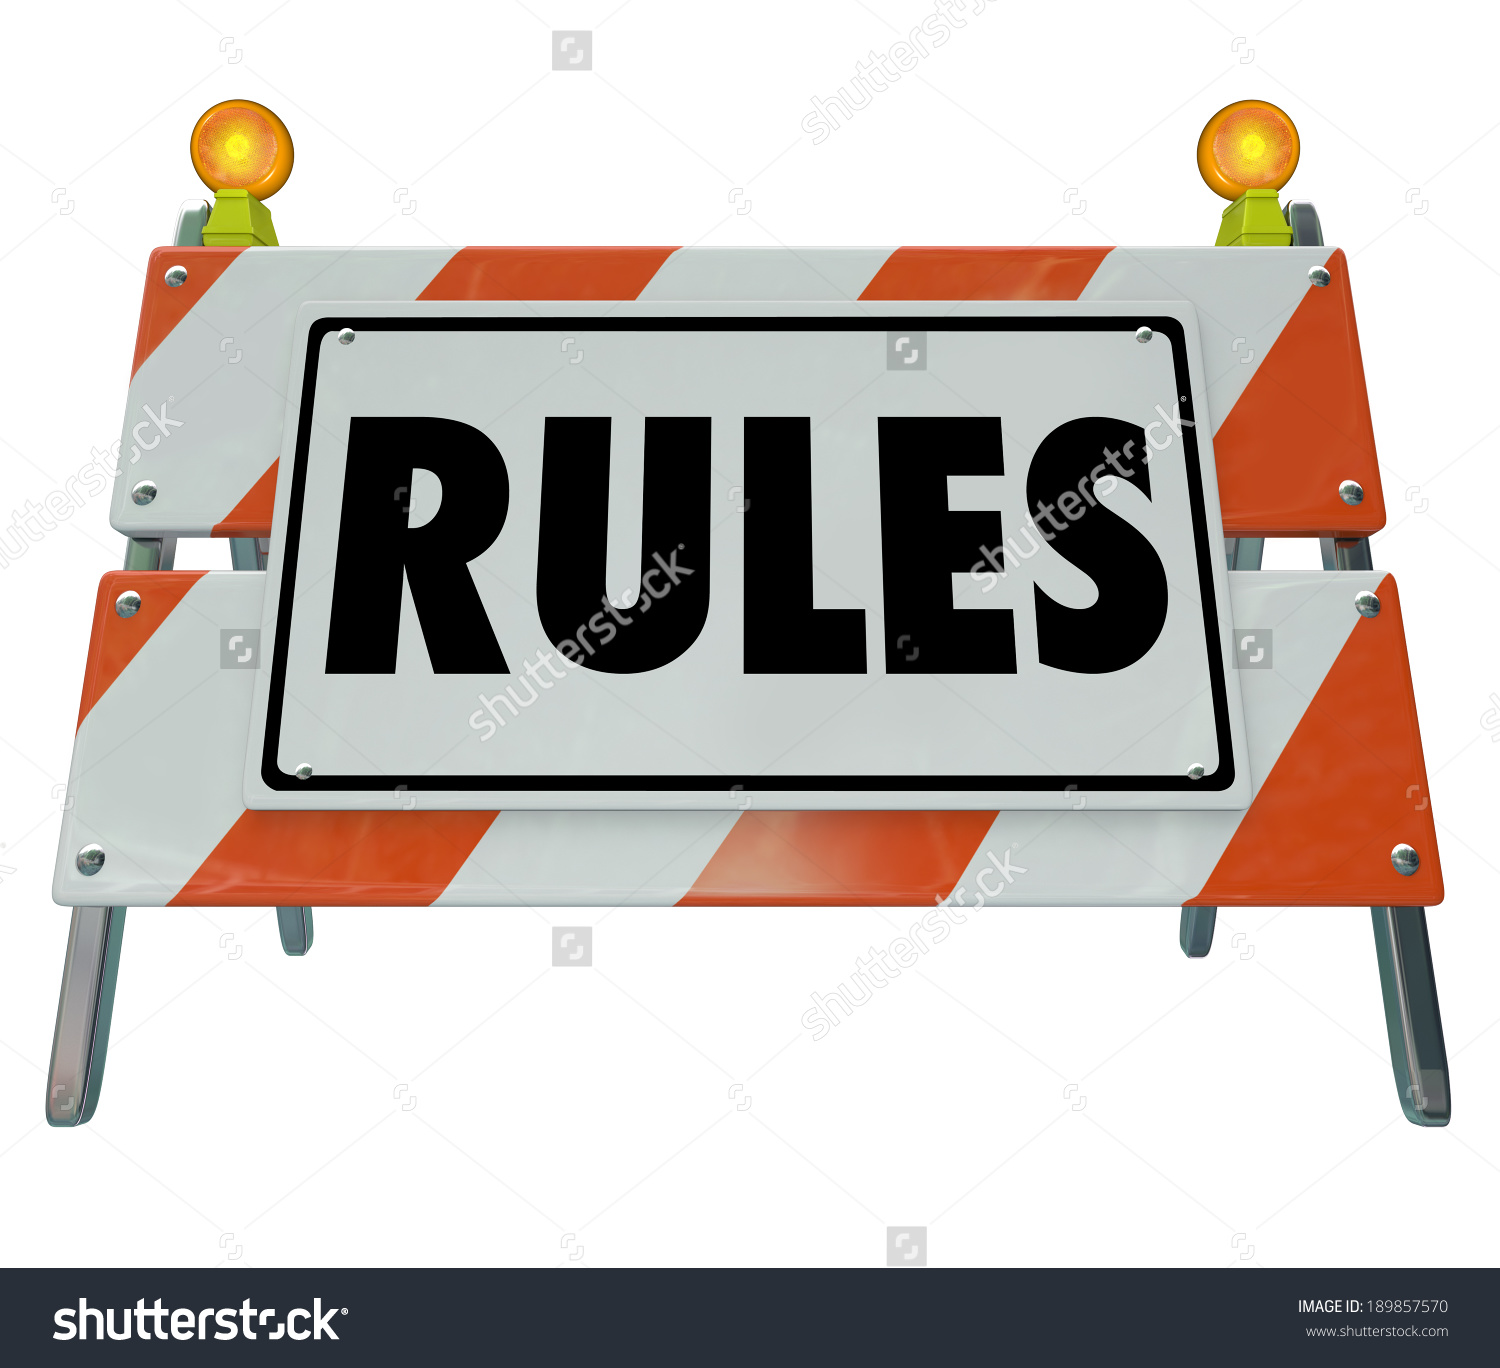 Rules Word Road Construction Barrier Sign Stock Illustration.